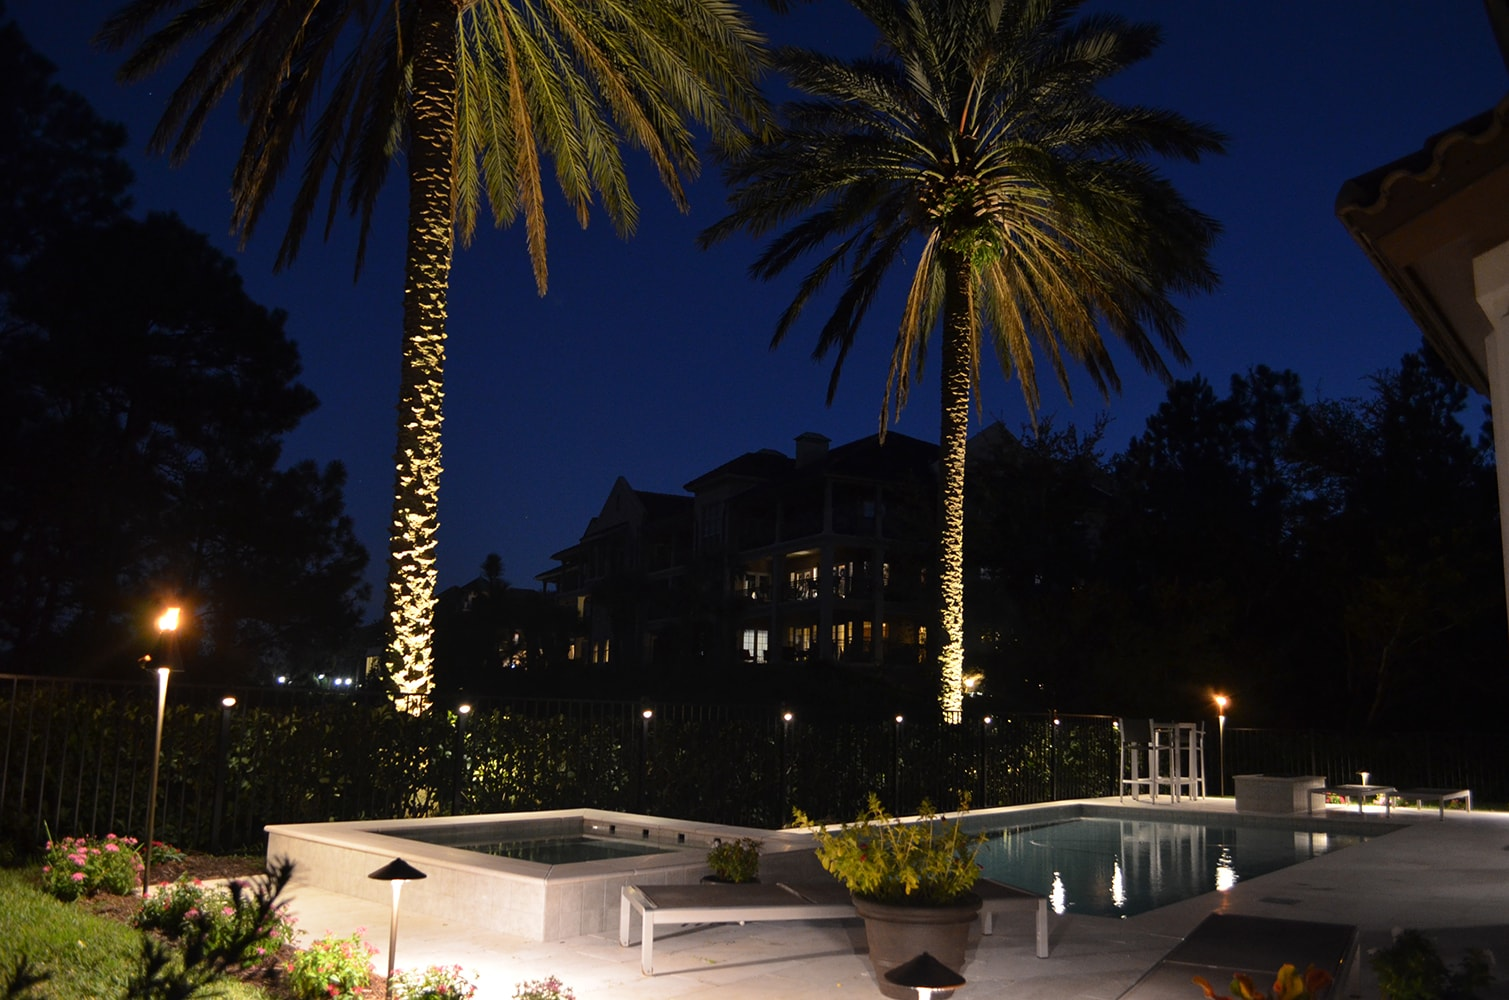 Outdoor lights around the pool and trees